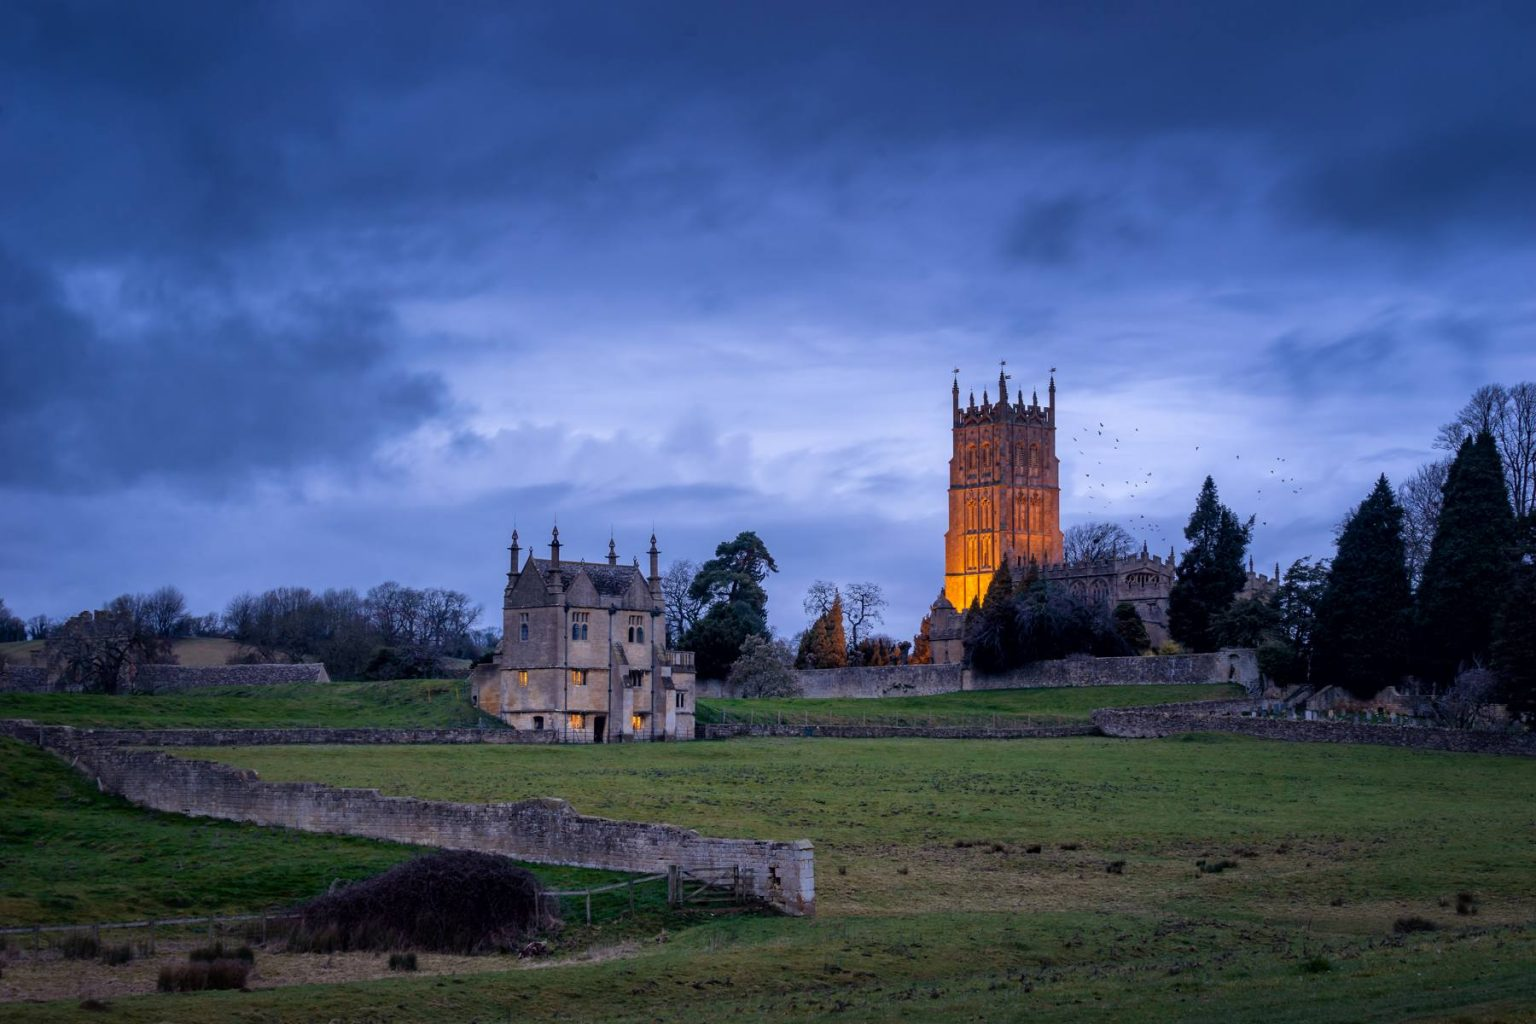 Chipping Campden, cotswolds in Gloucestershire with Church WG